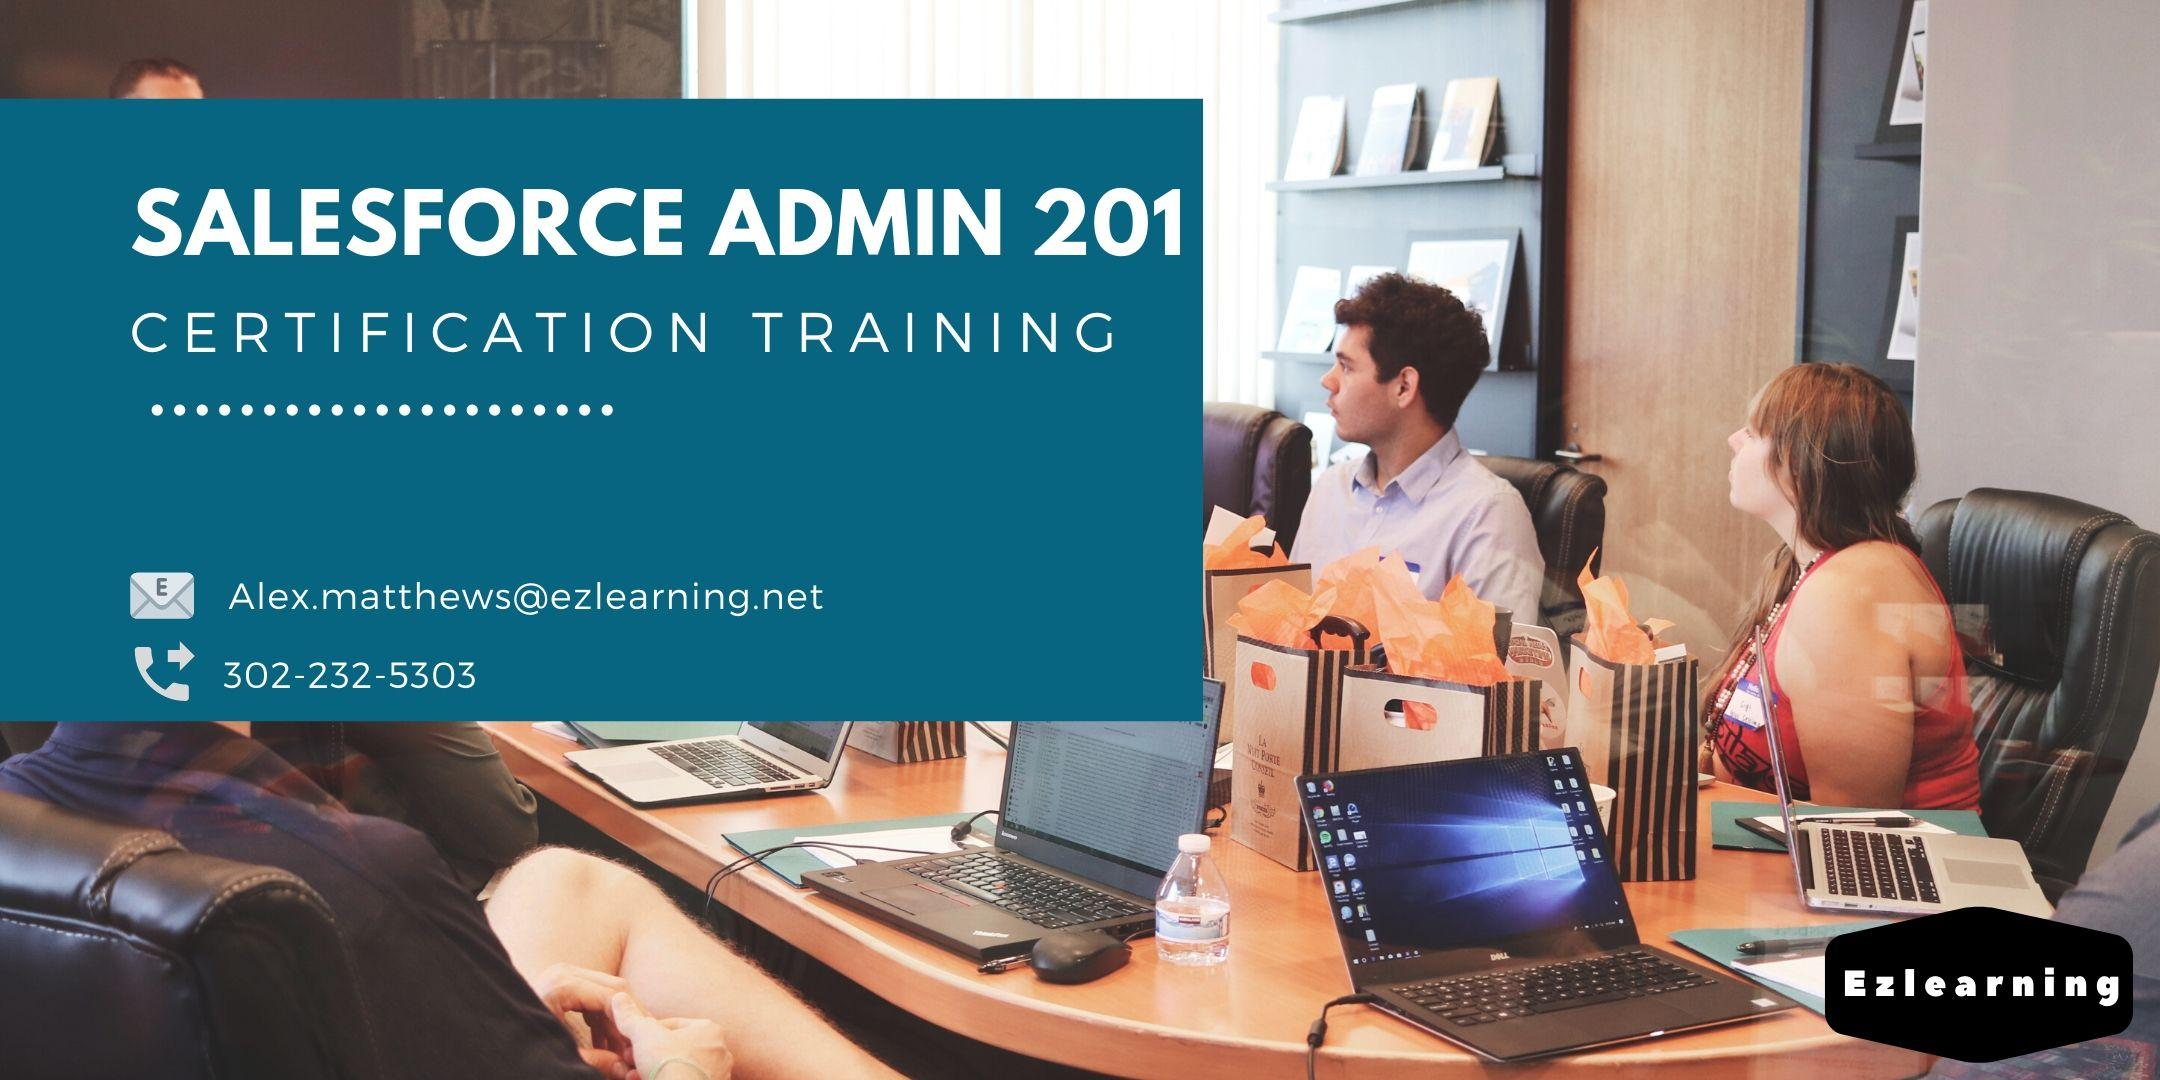 Salesforce Admin 201 Certification Training in Burnaby, BC